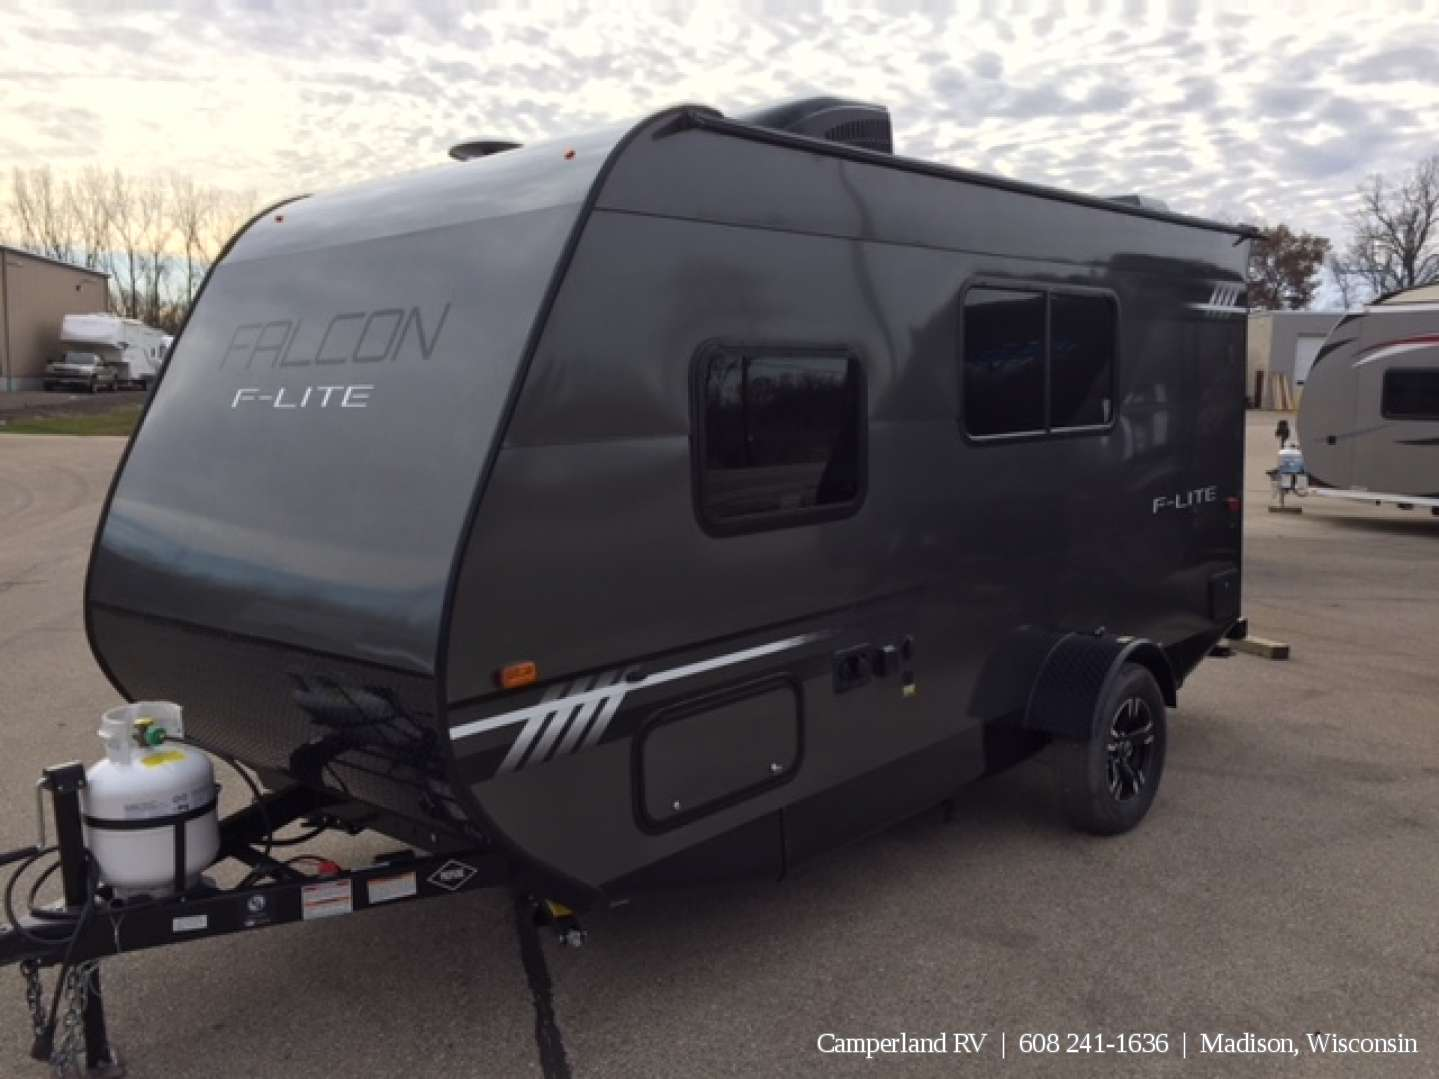 2018 Travel Lite Falcon F Lite 18rb 766 Camperland Rv In Madison Wi Wisconsin